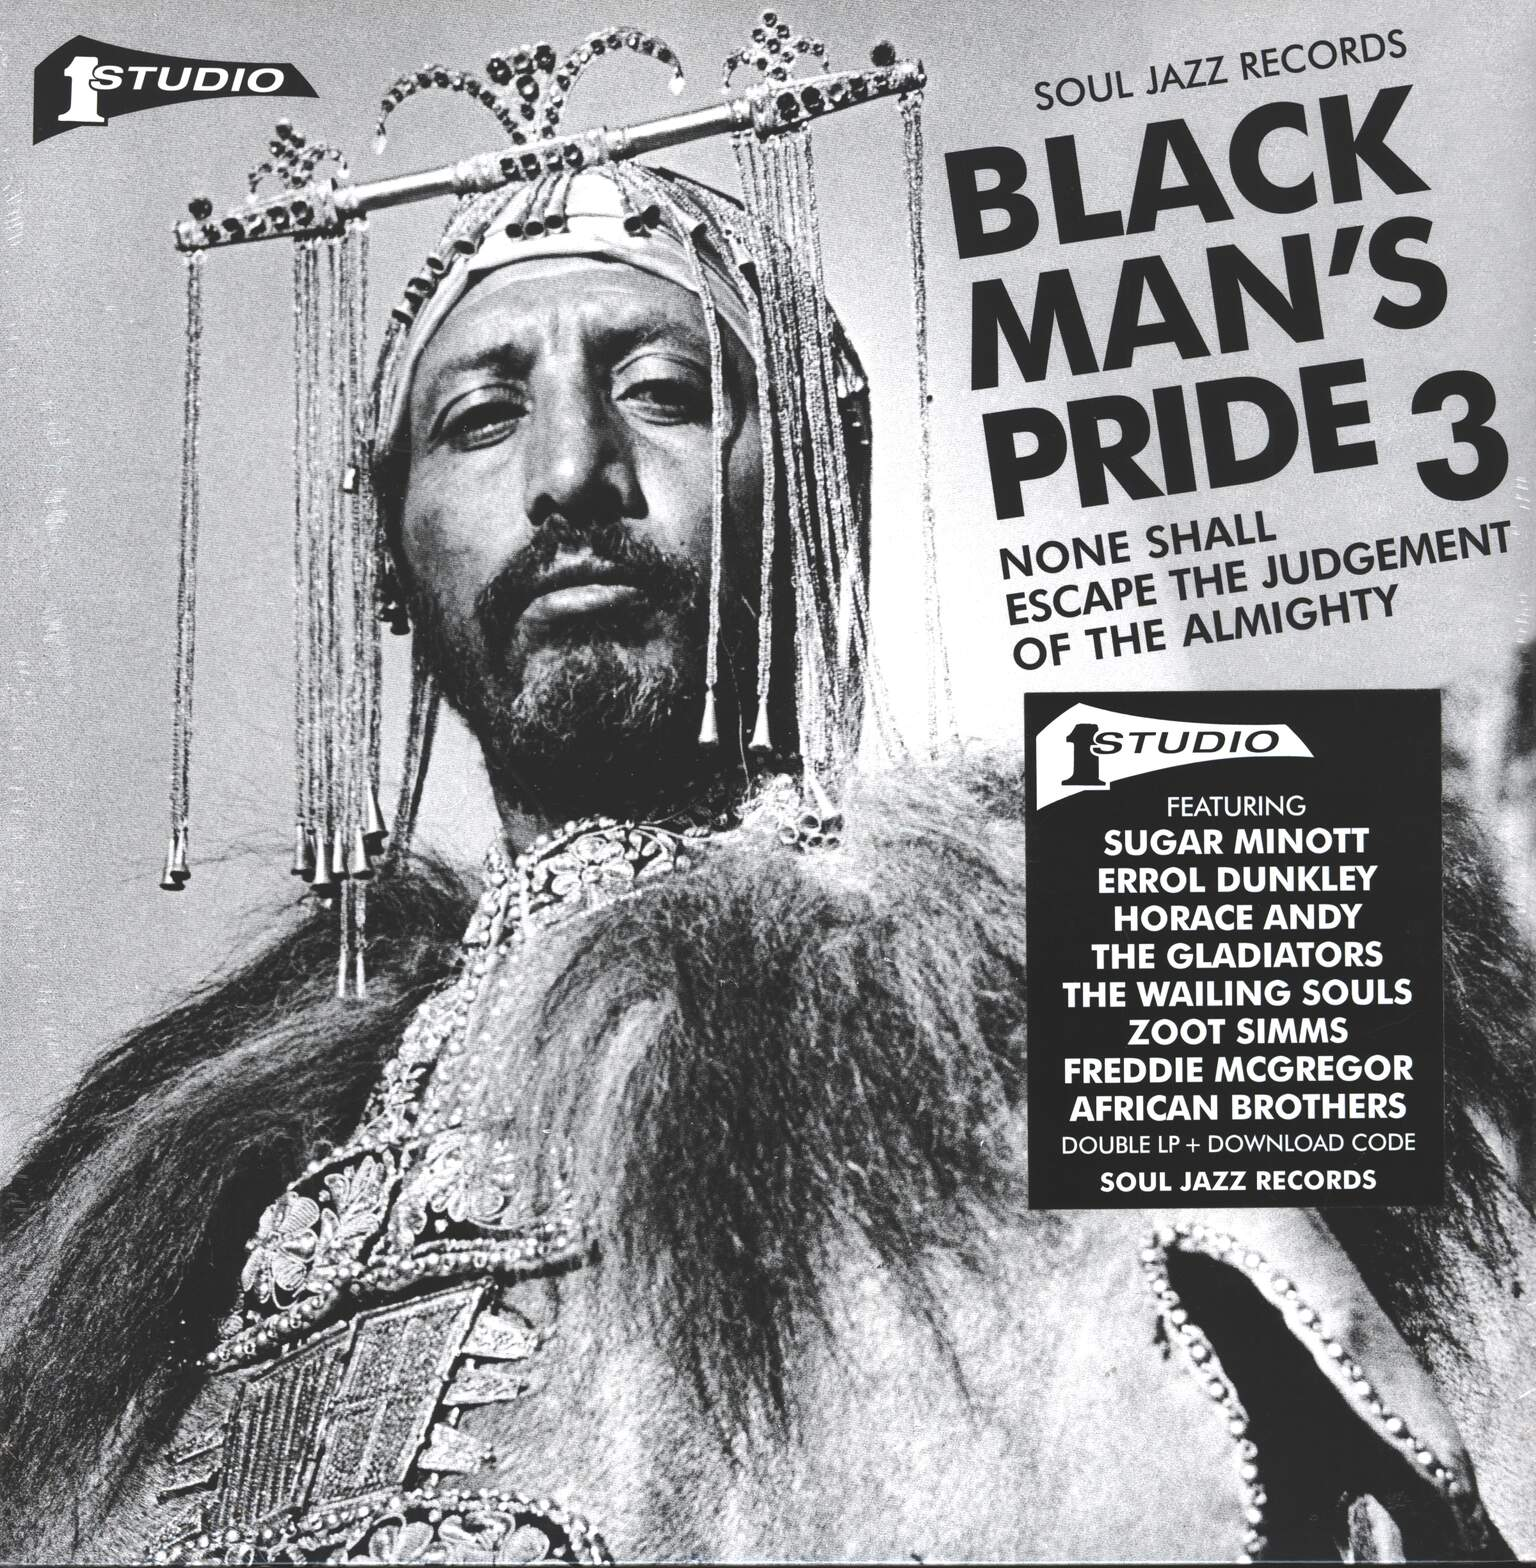 Various: Black Man's Pride 3 (None Shall Escape The Judgement Of The Almighty), 2×LP (Vinyl)